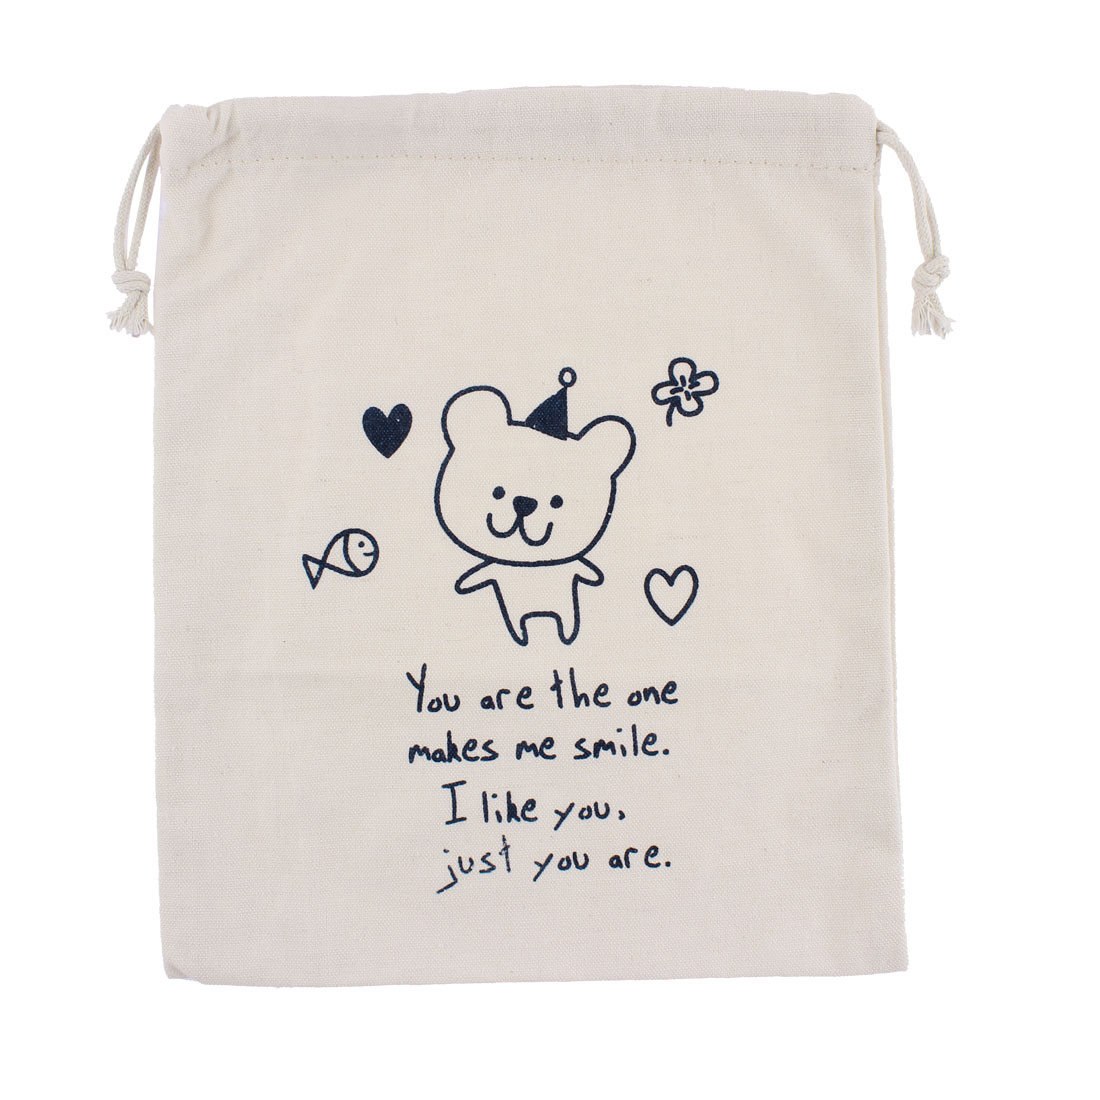 Cotton Blends Bear Print Sundries Storage Drawstring Bag Organizer 25 x 21cm